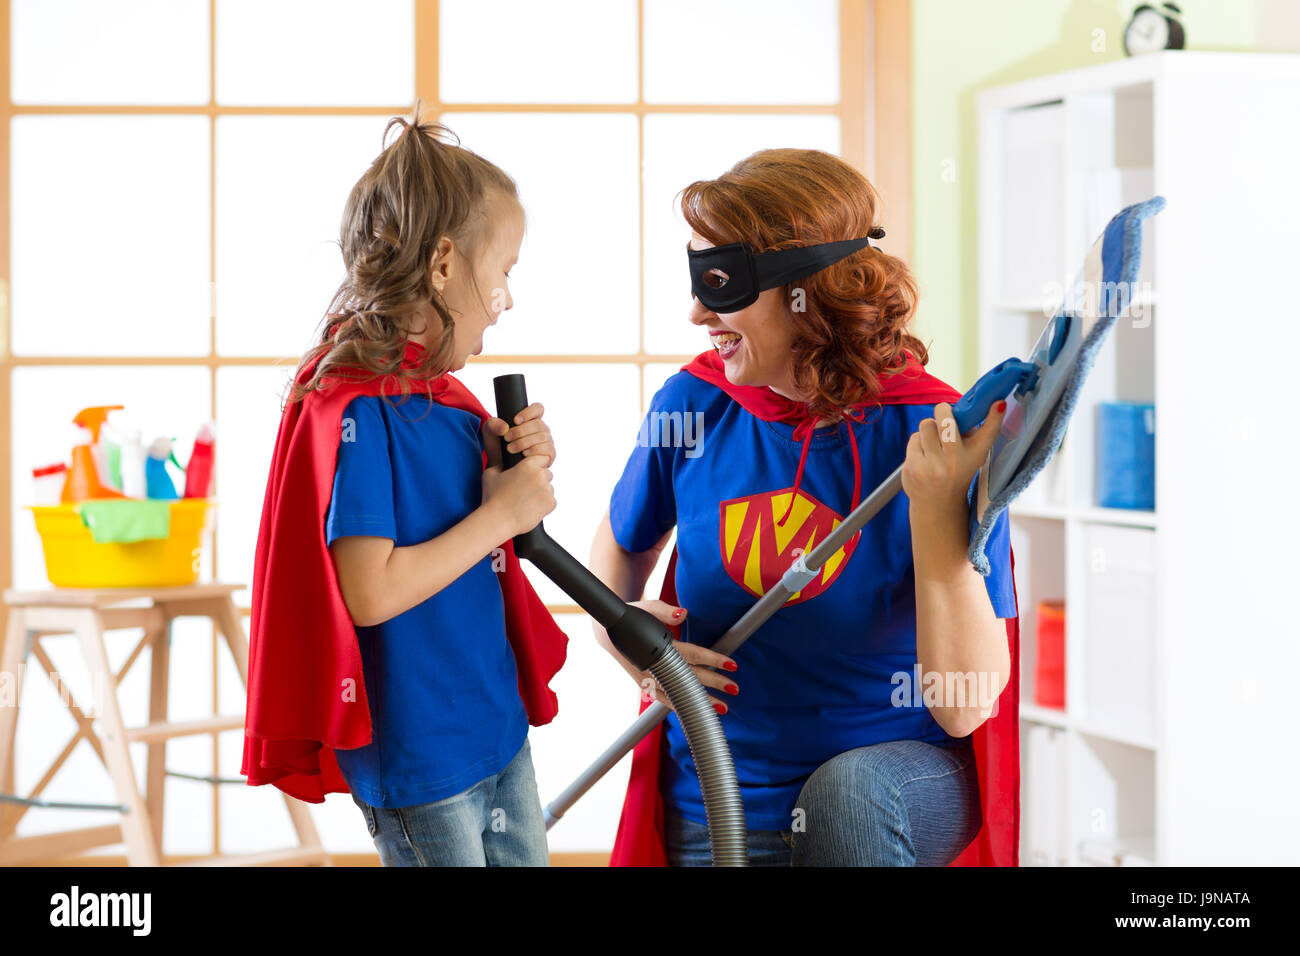 Happy woman with kid cleaning room and have a fun. Mother and child girl playing together. Family in Superhero costumes. - Stock Image